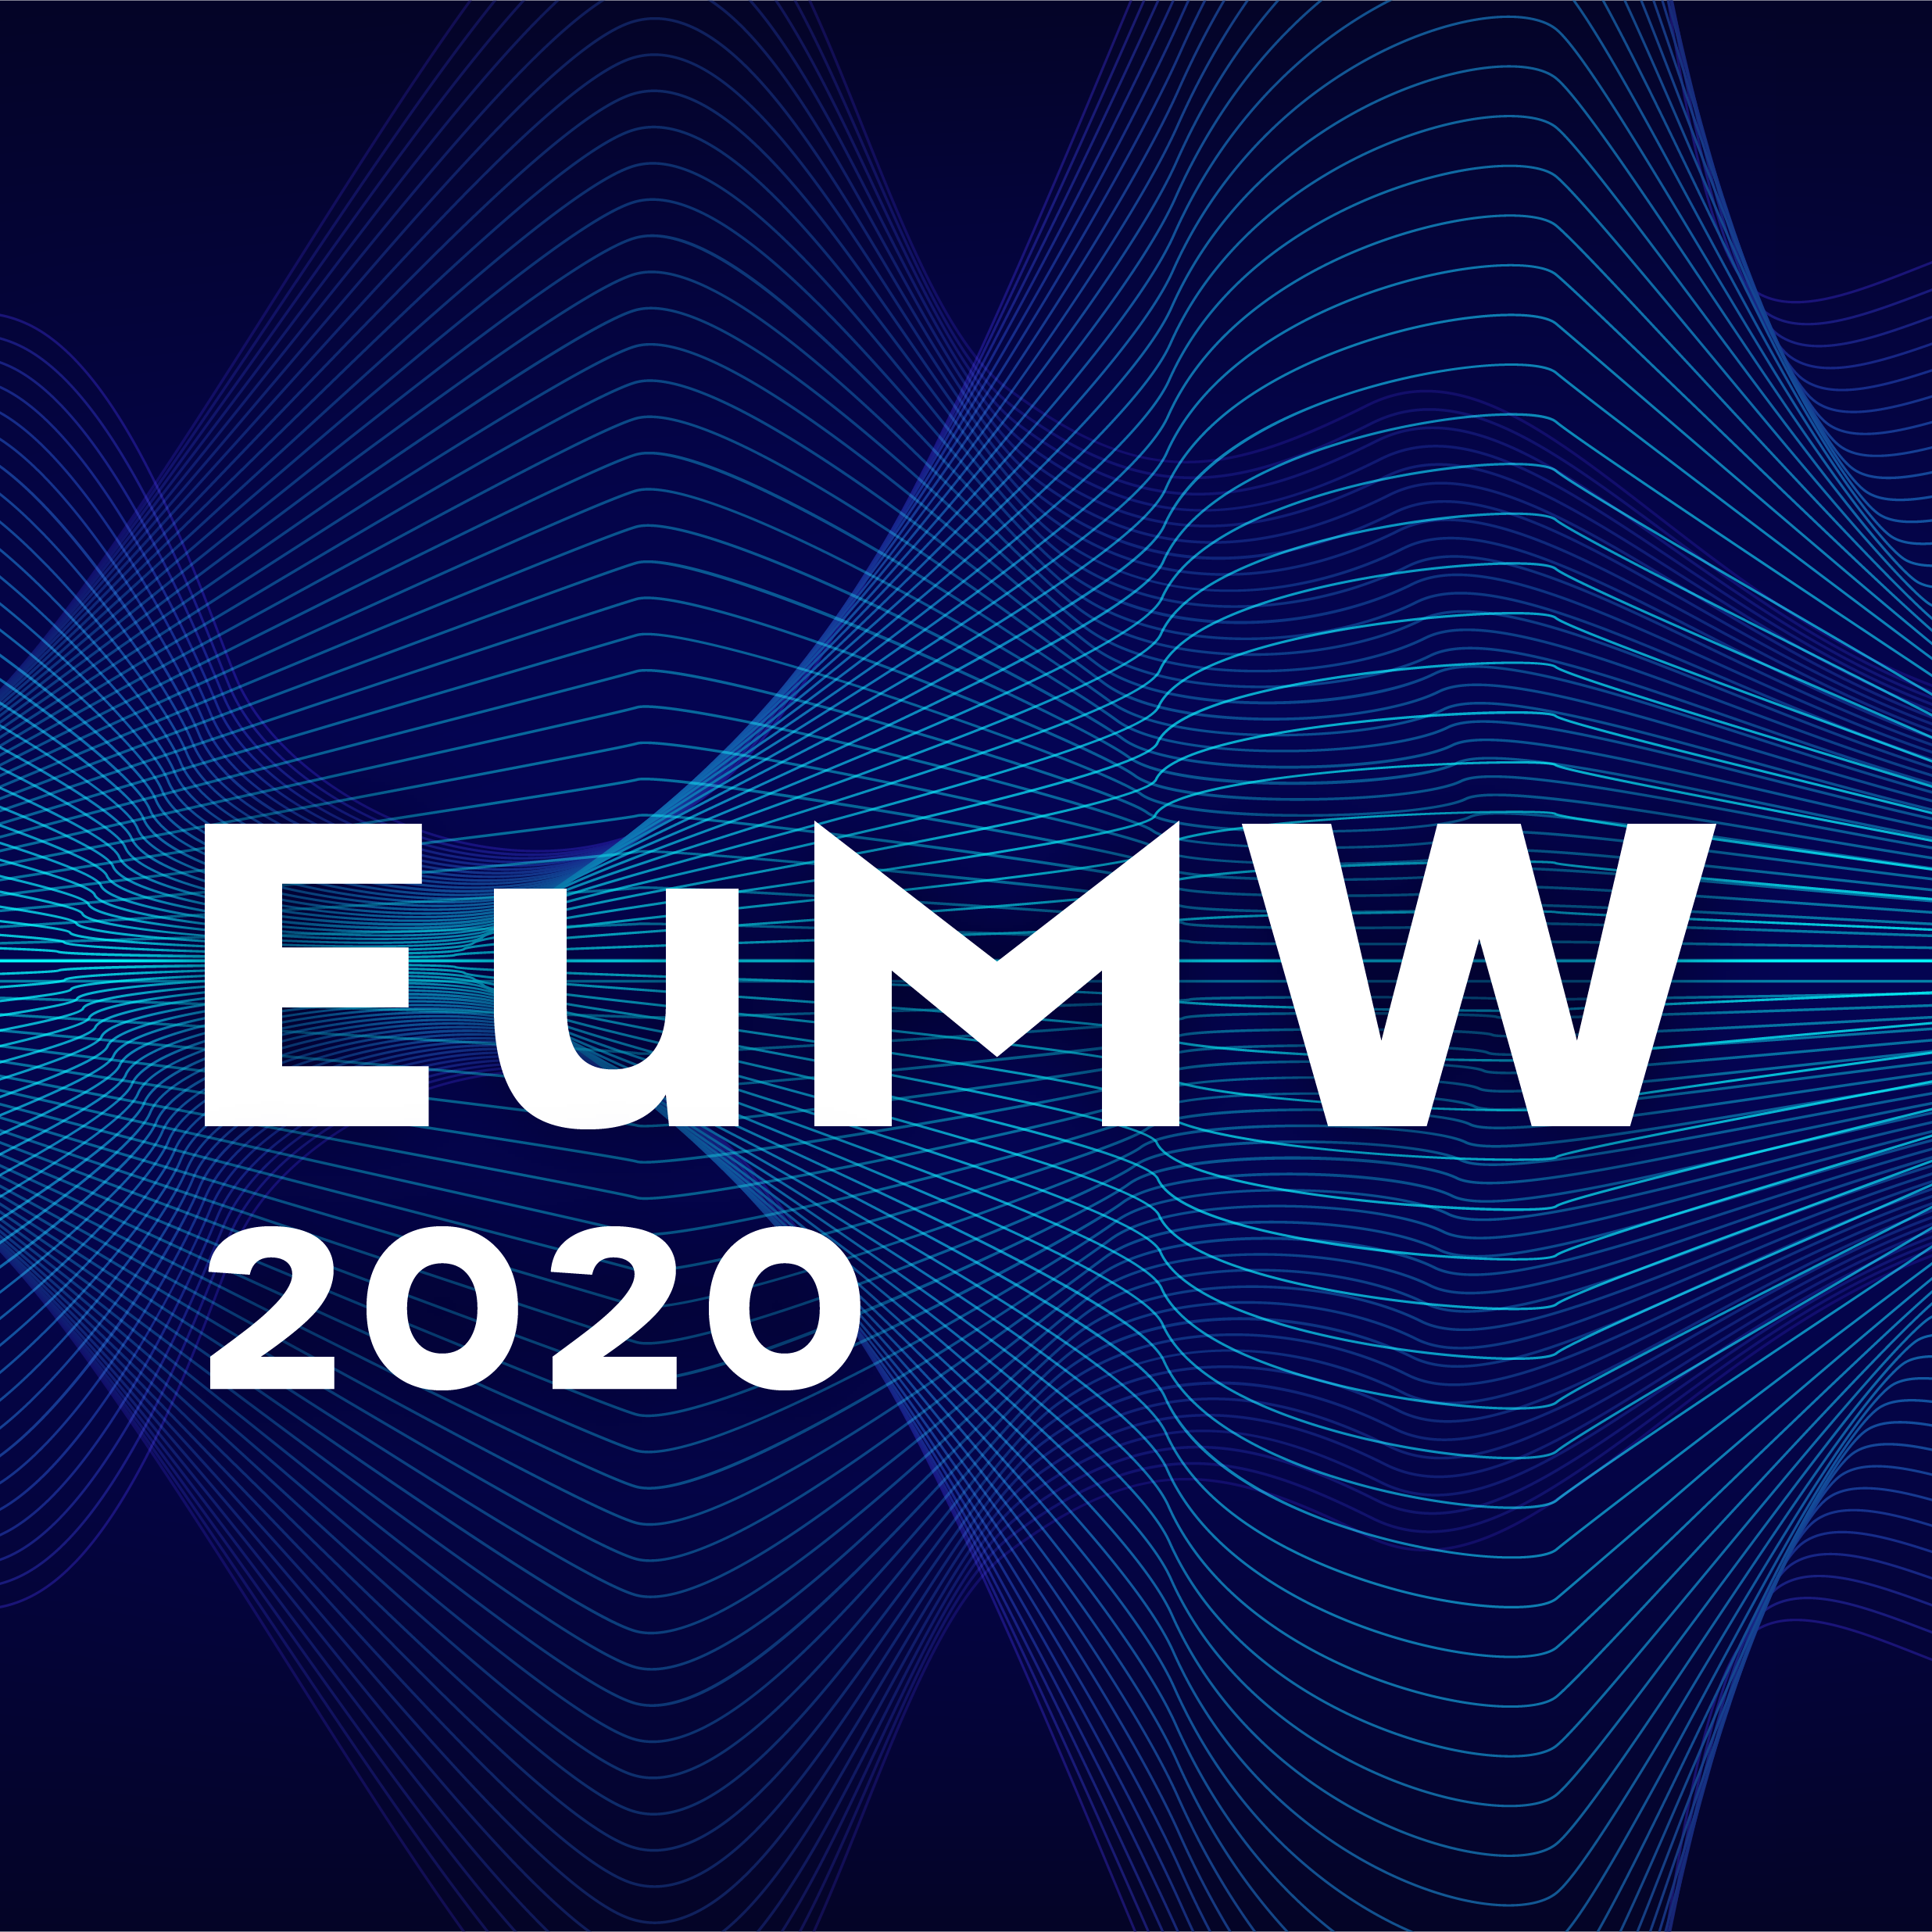 European Microwave Week 2020